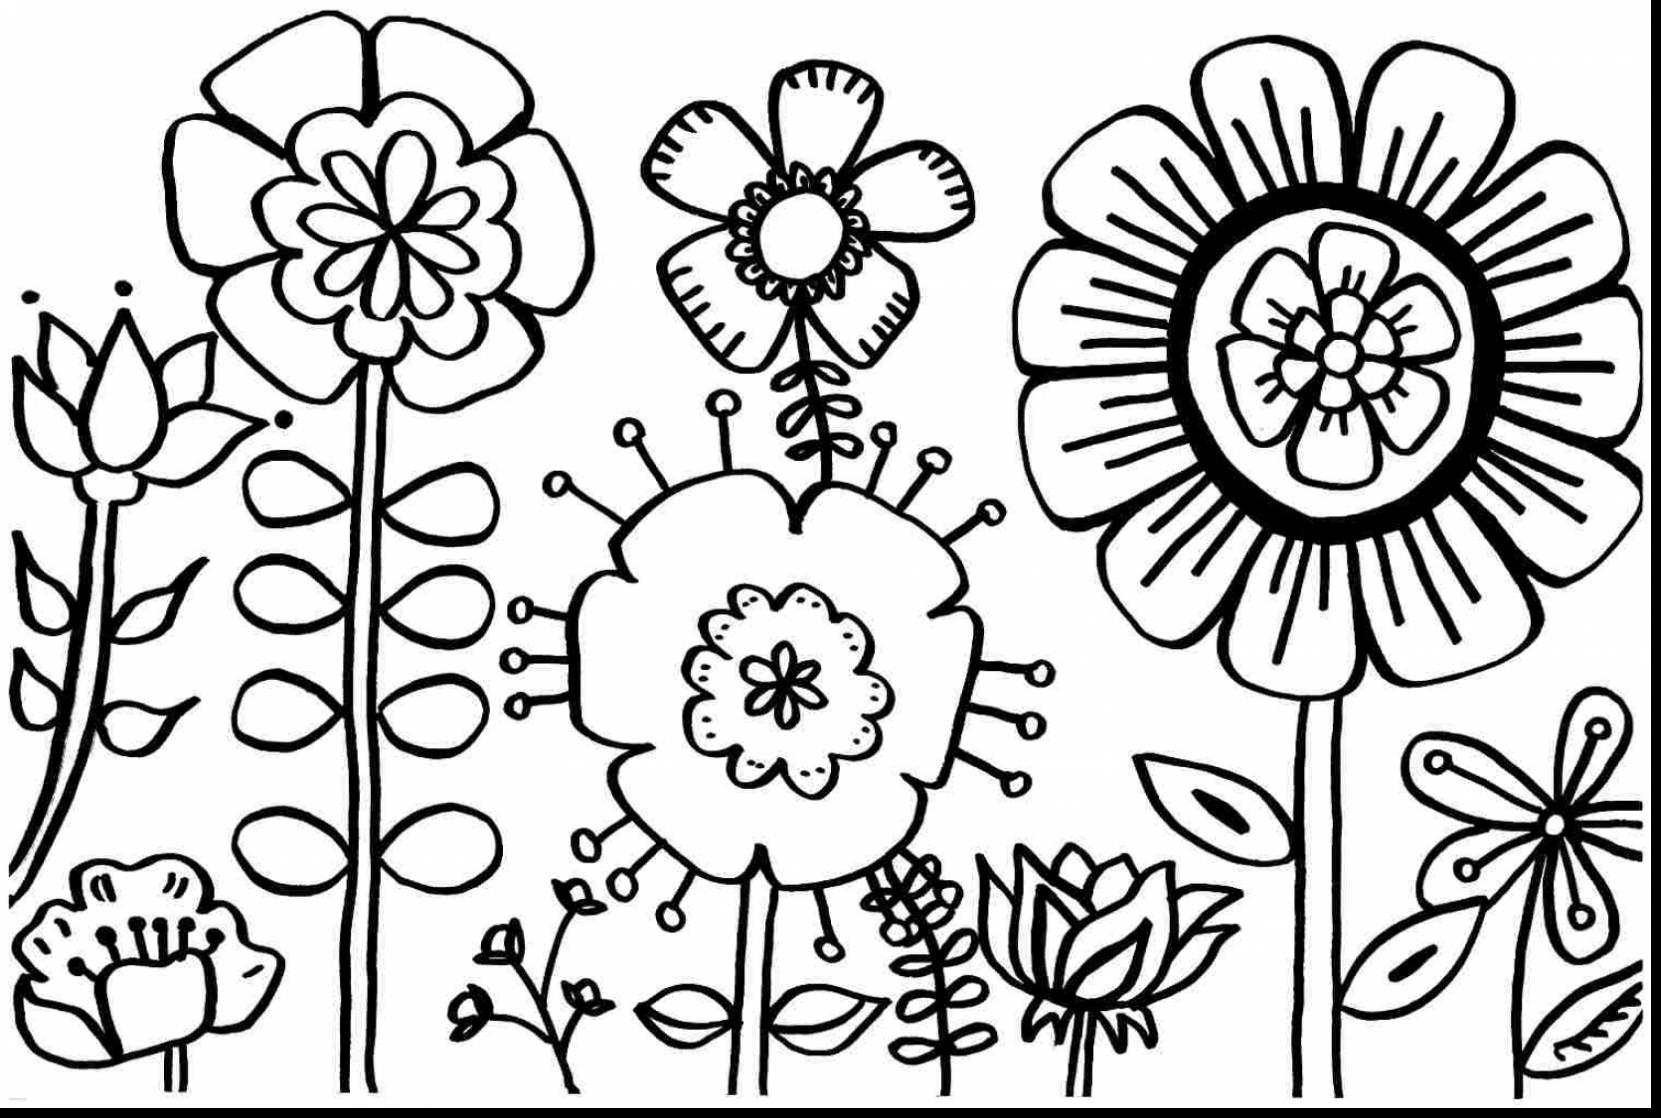 Free Printable Spring Coloring Pages | All Coloring Pages - Spring Coloring Sheets Free Printable